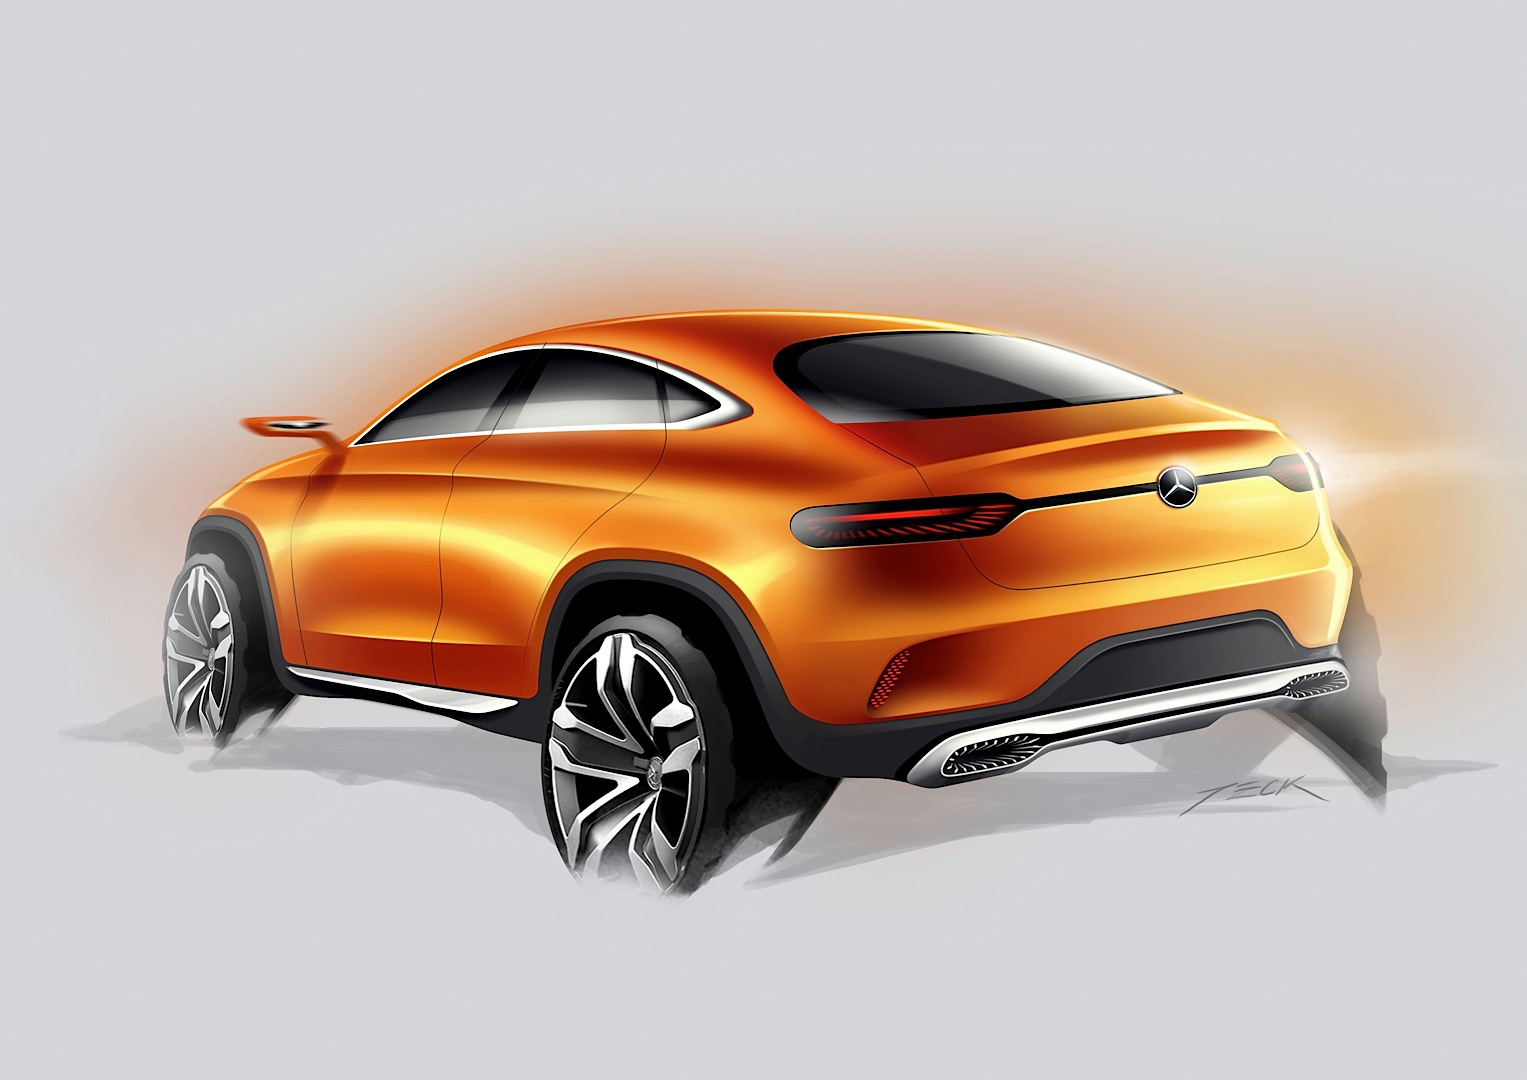 Mercedes benz concept coupe suv officially revealed for Mercedes benz suv coupe